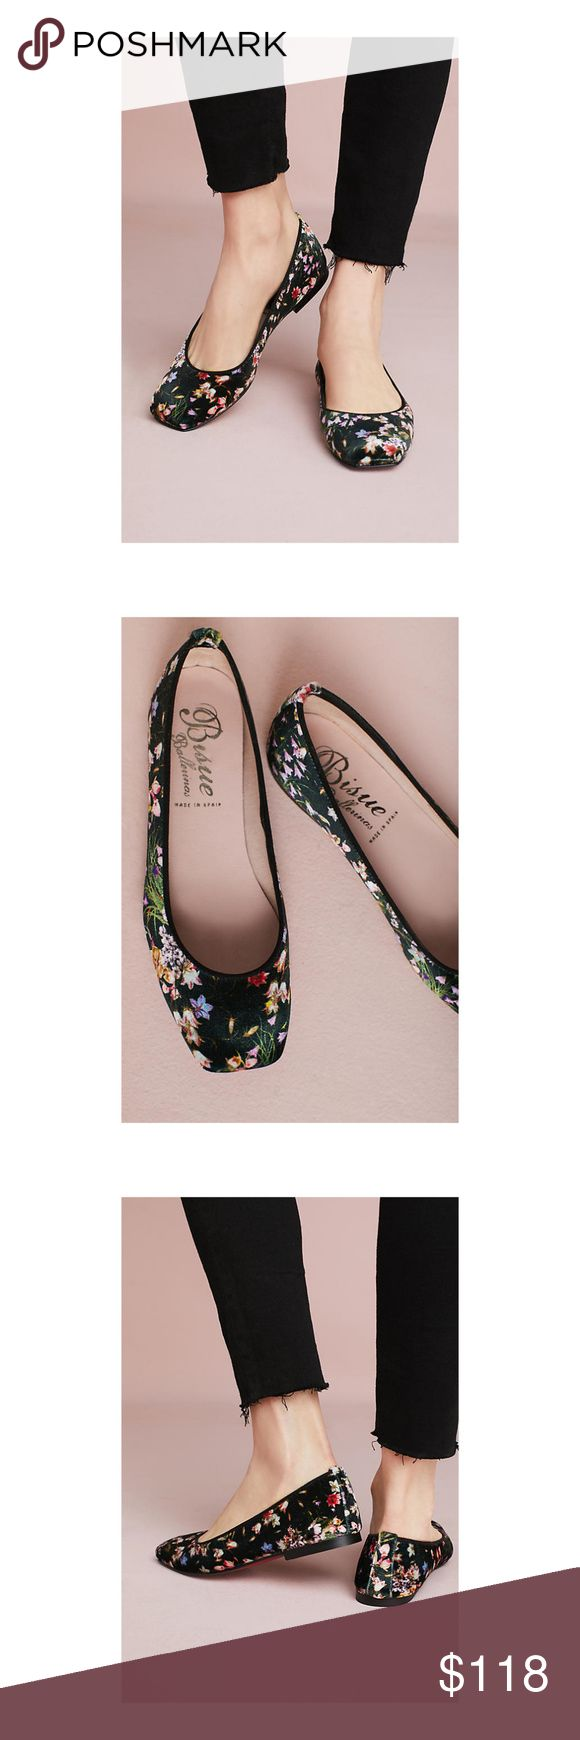 Bisue Ballerinas Square Toe Floral Ballet Flats 36 Bisue Ballerinas Square-Toe Floral Ballet Flats from Anthropologie.  New without box.  Size 36.  Made in Spain. Anthropologie Shoes Flats & Loafers